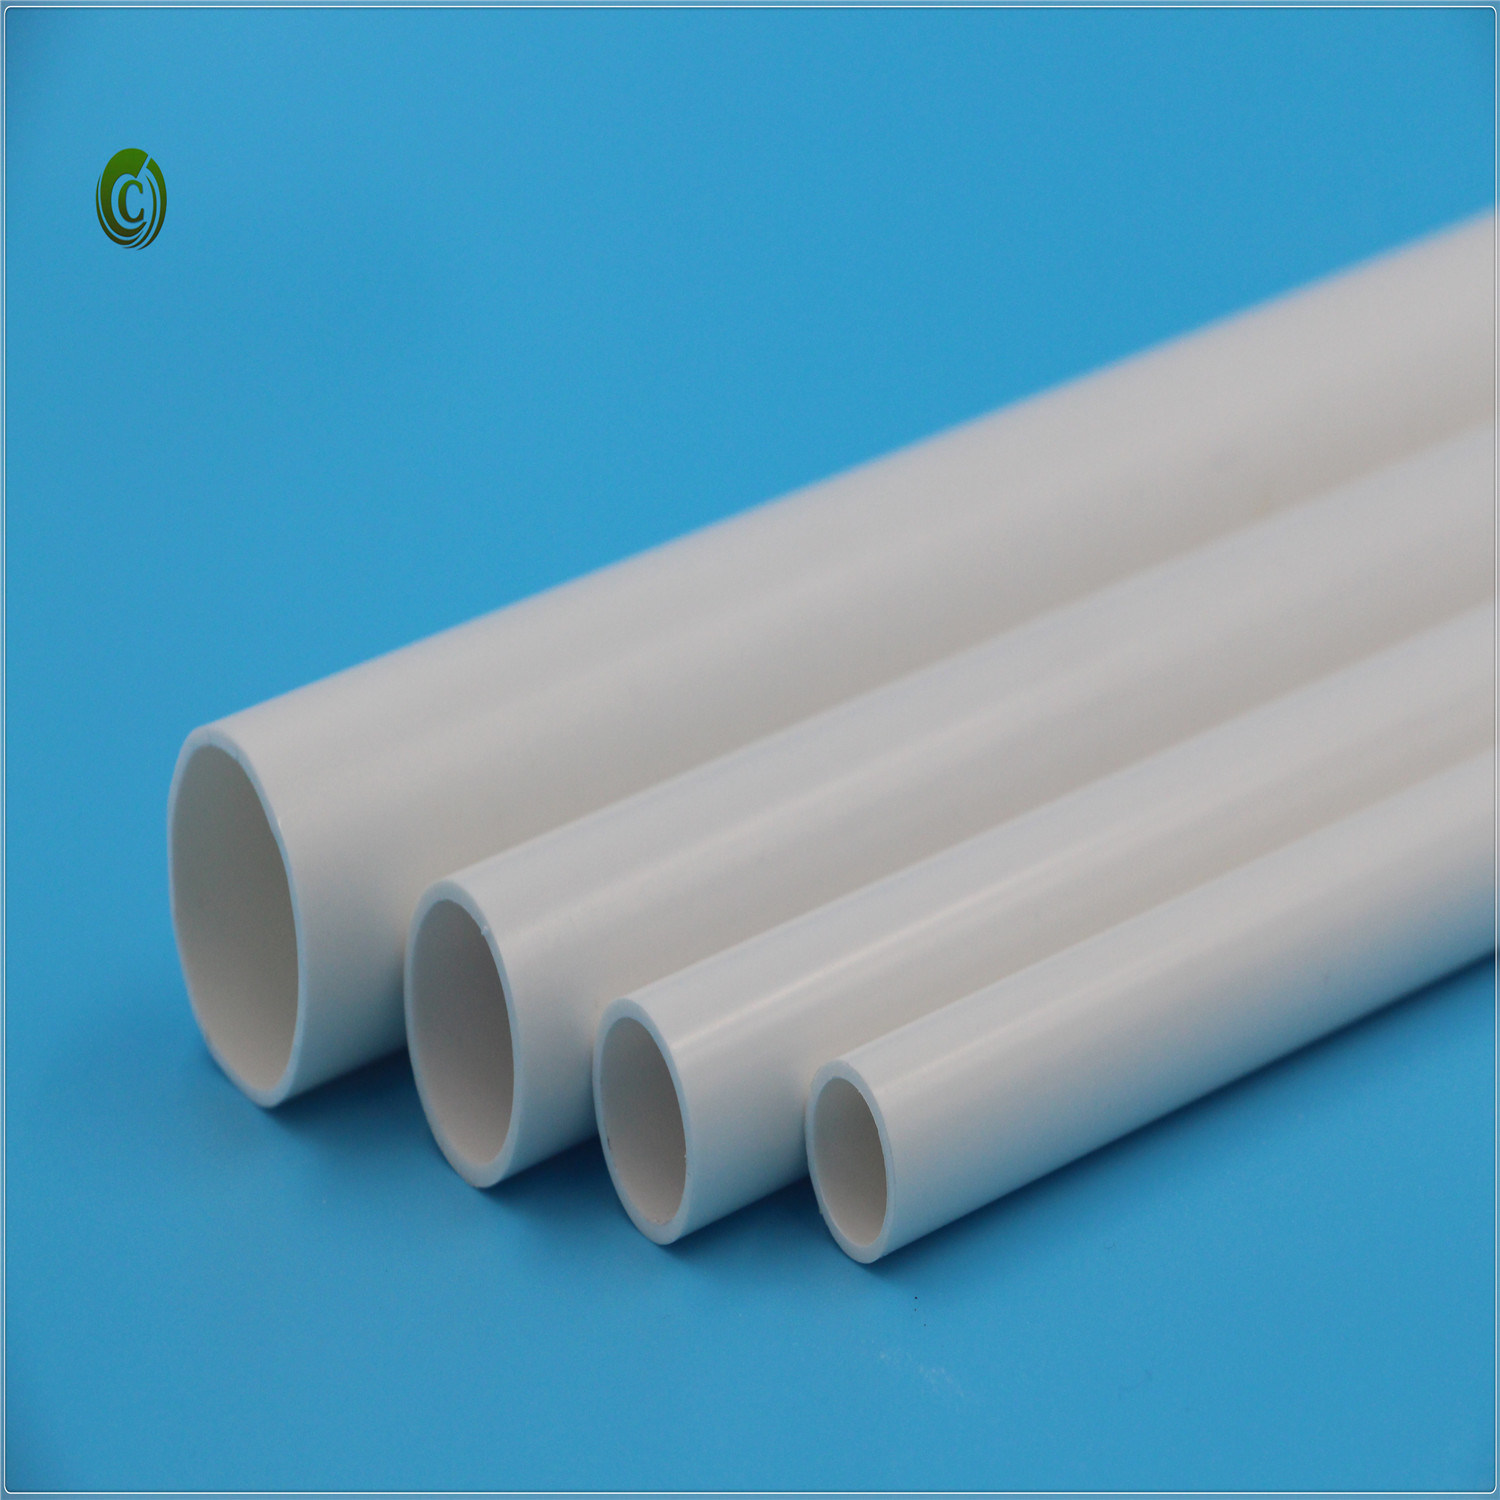 China Good Price PVC Electrical Pipe for Conduit Wiring 25mm - China ...